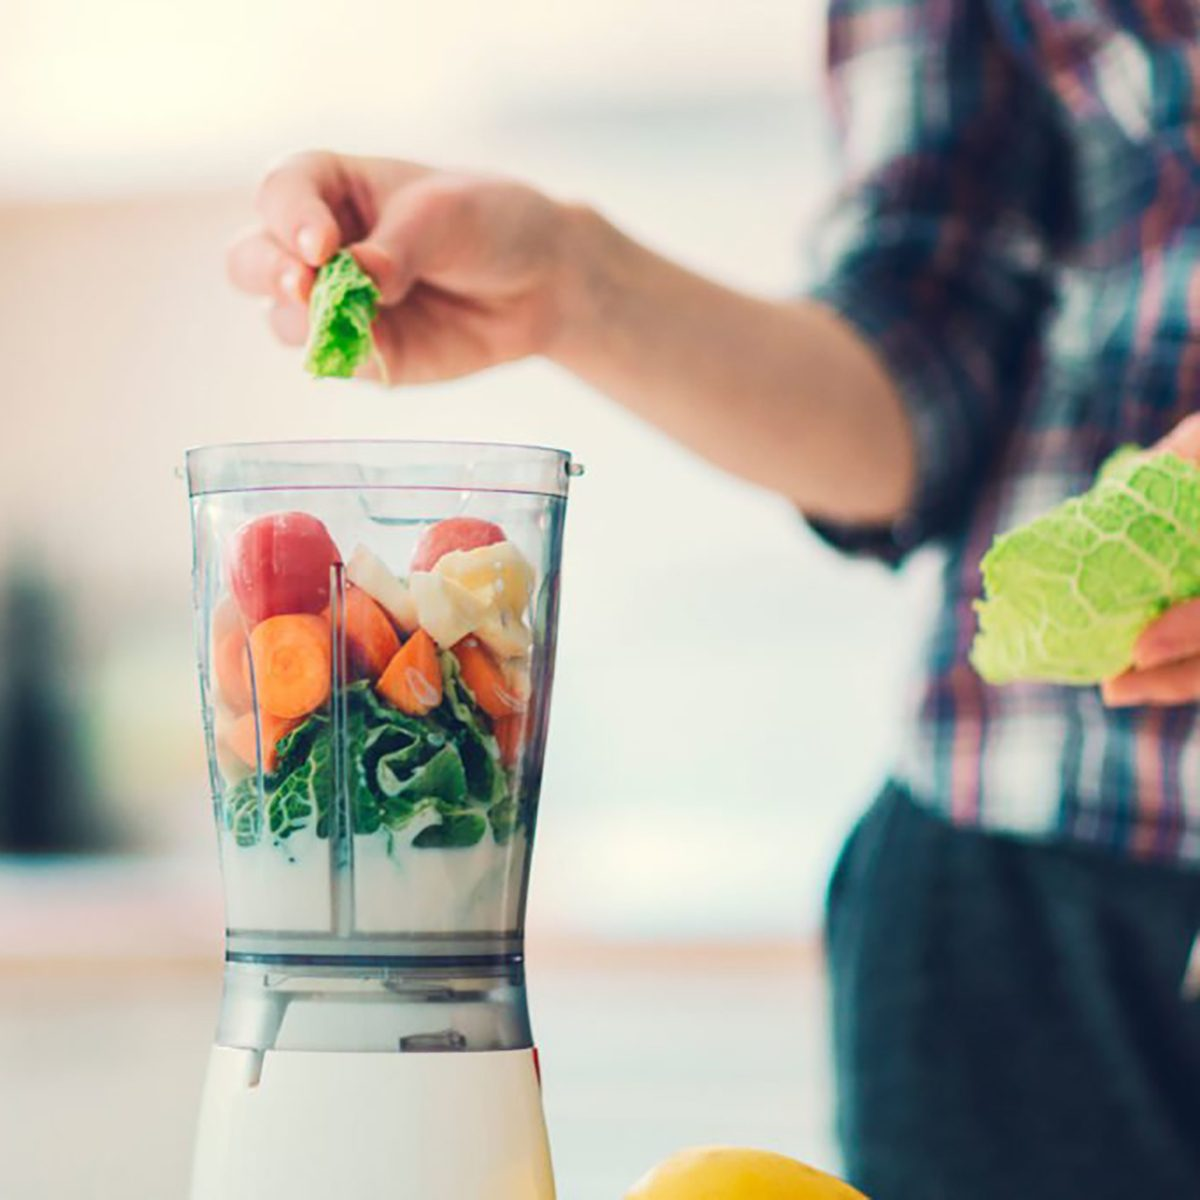 woman adding produce to blender